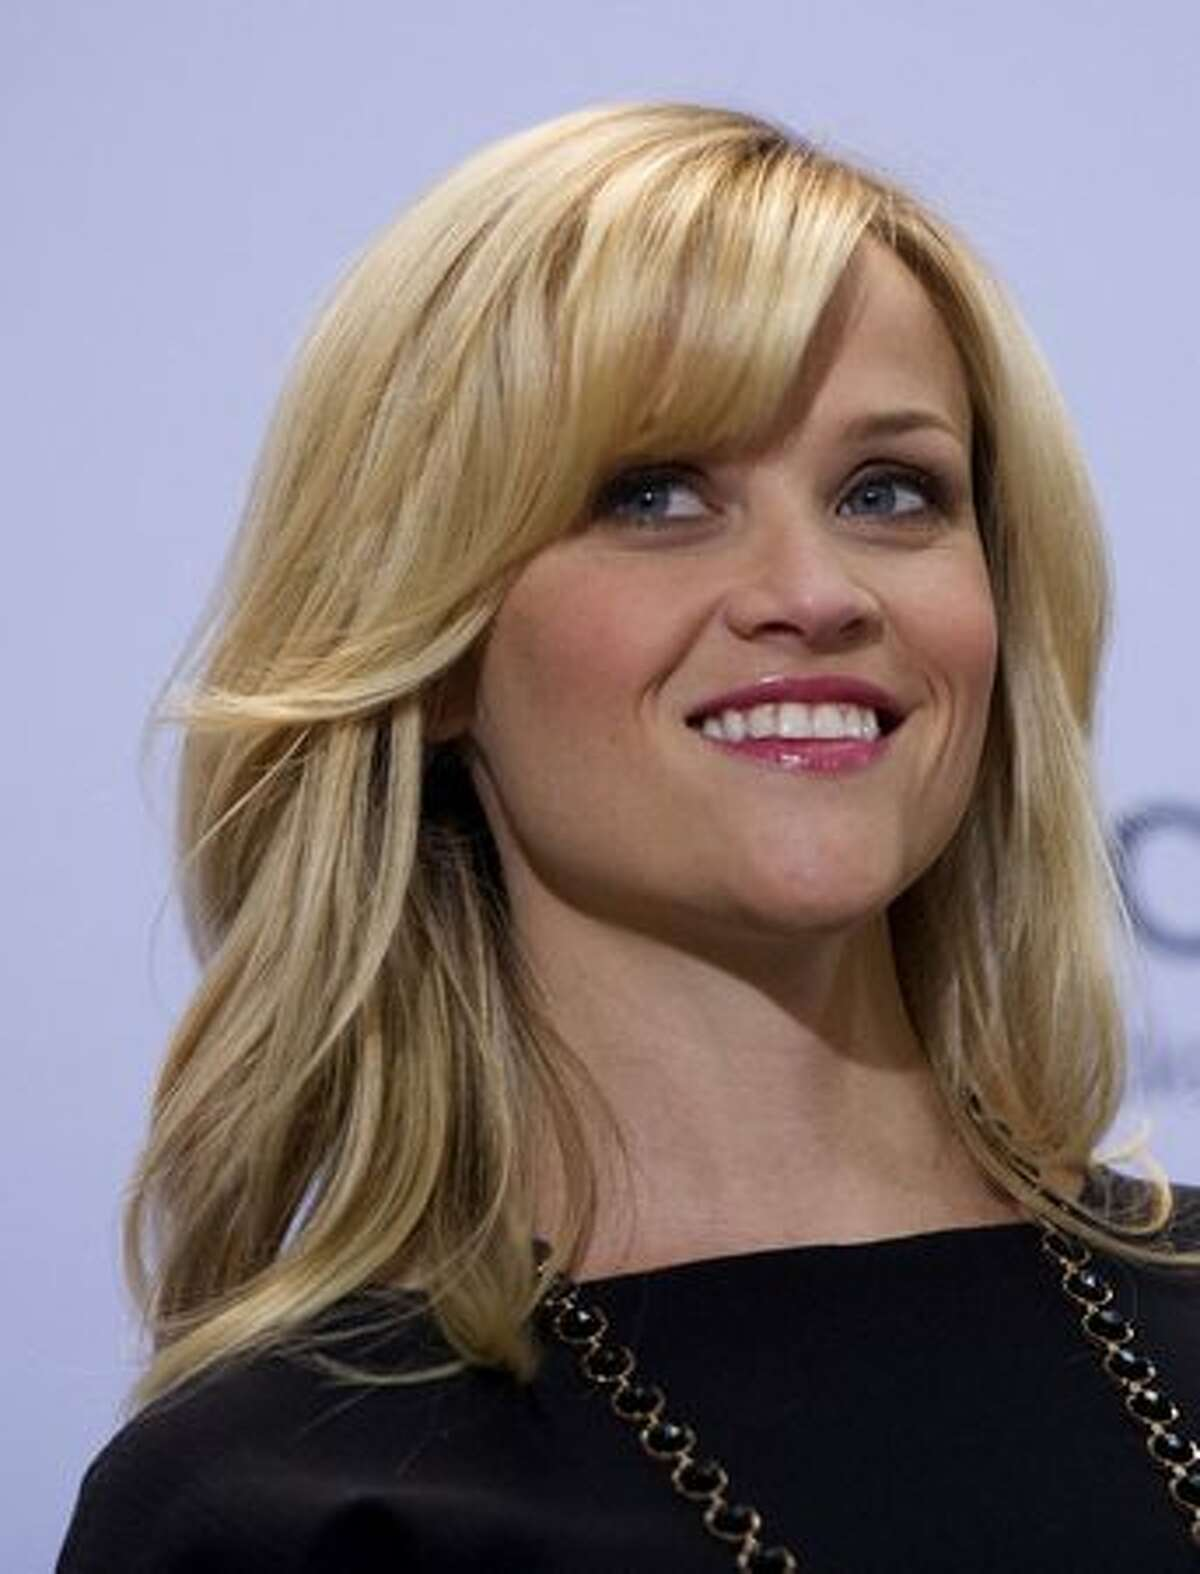 Actress Reese Witherspoon poses during a photocall to promote her film